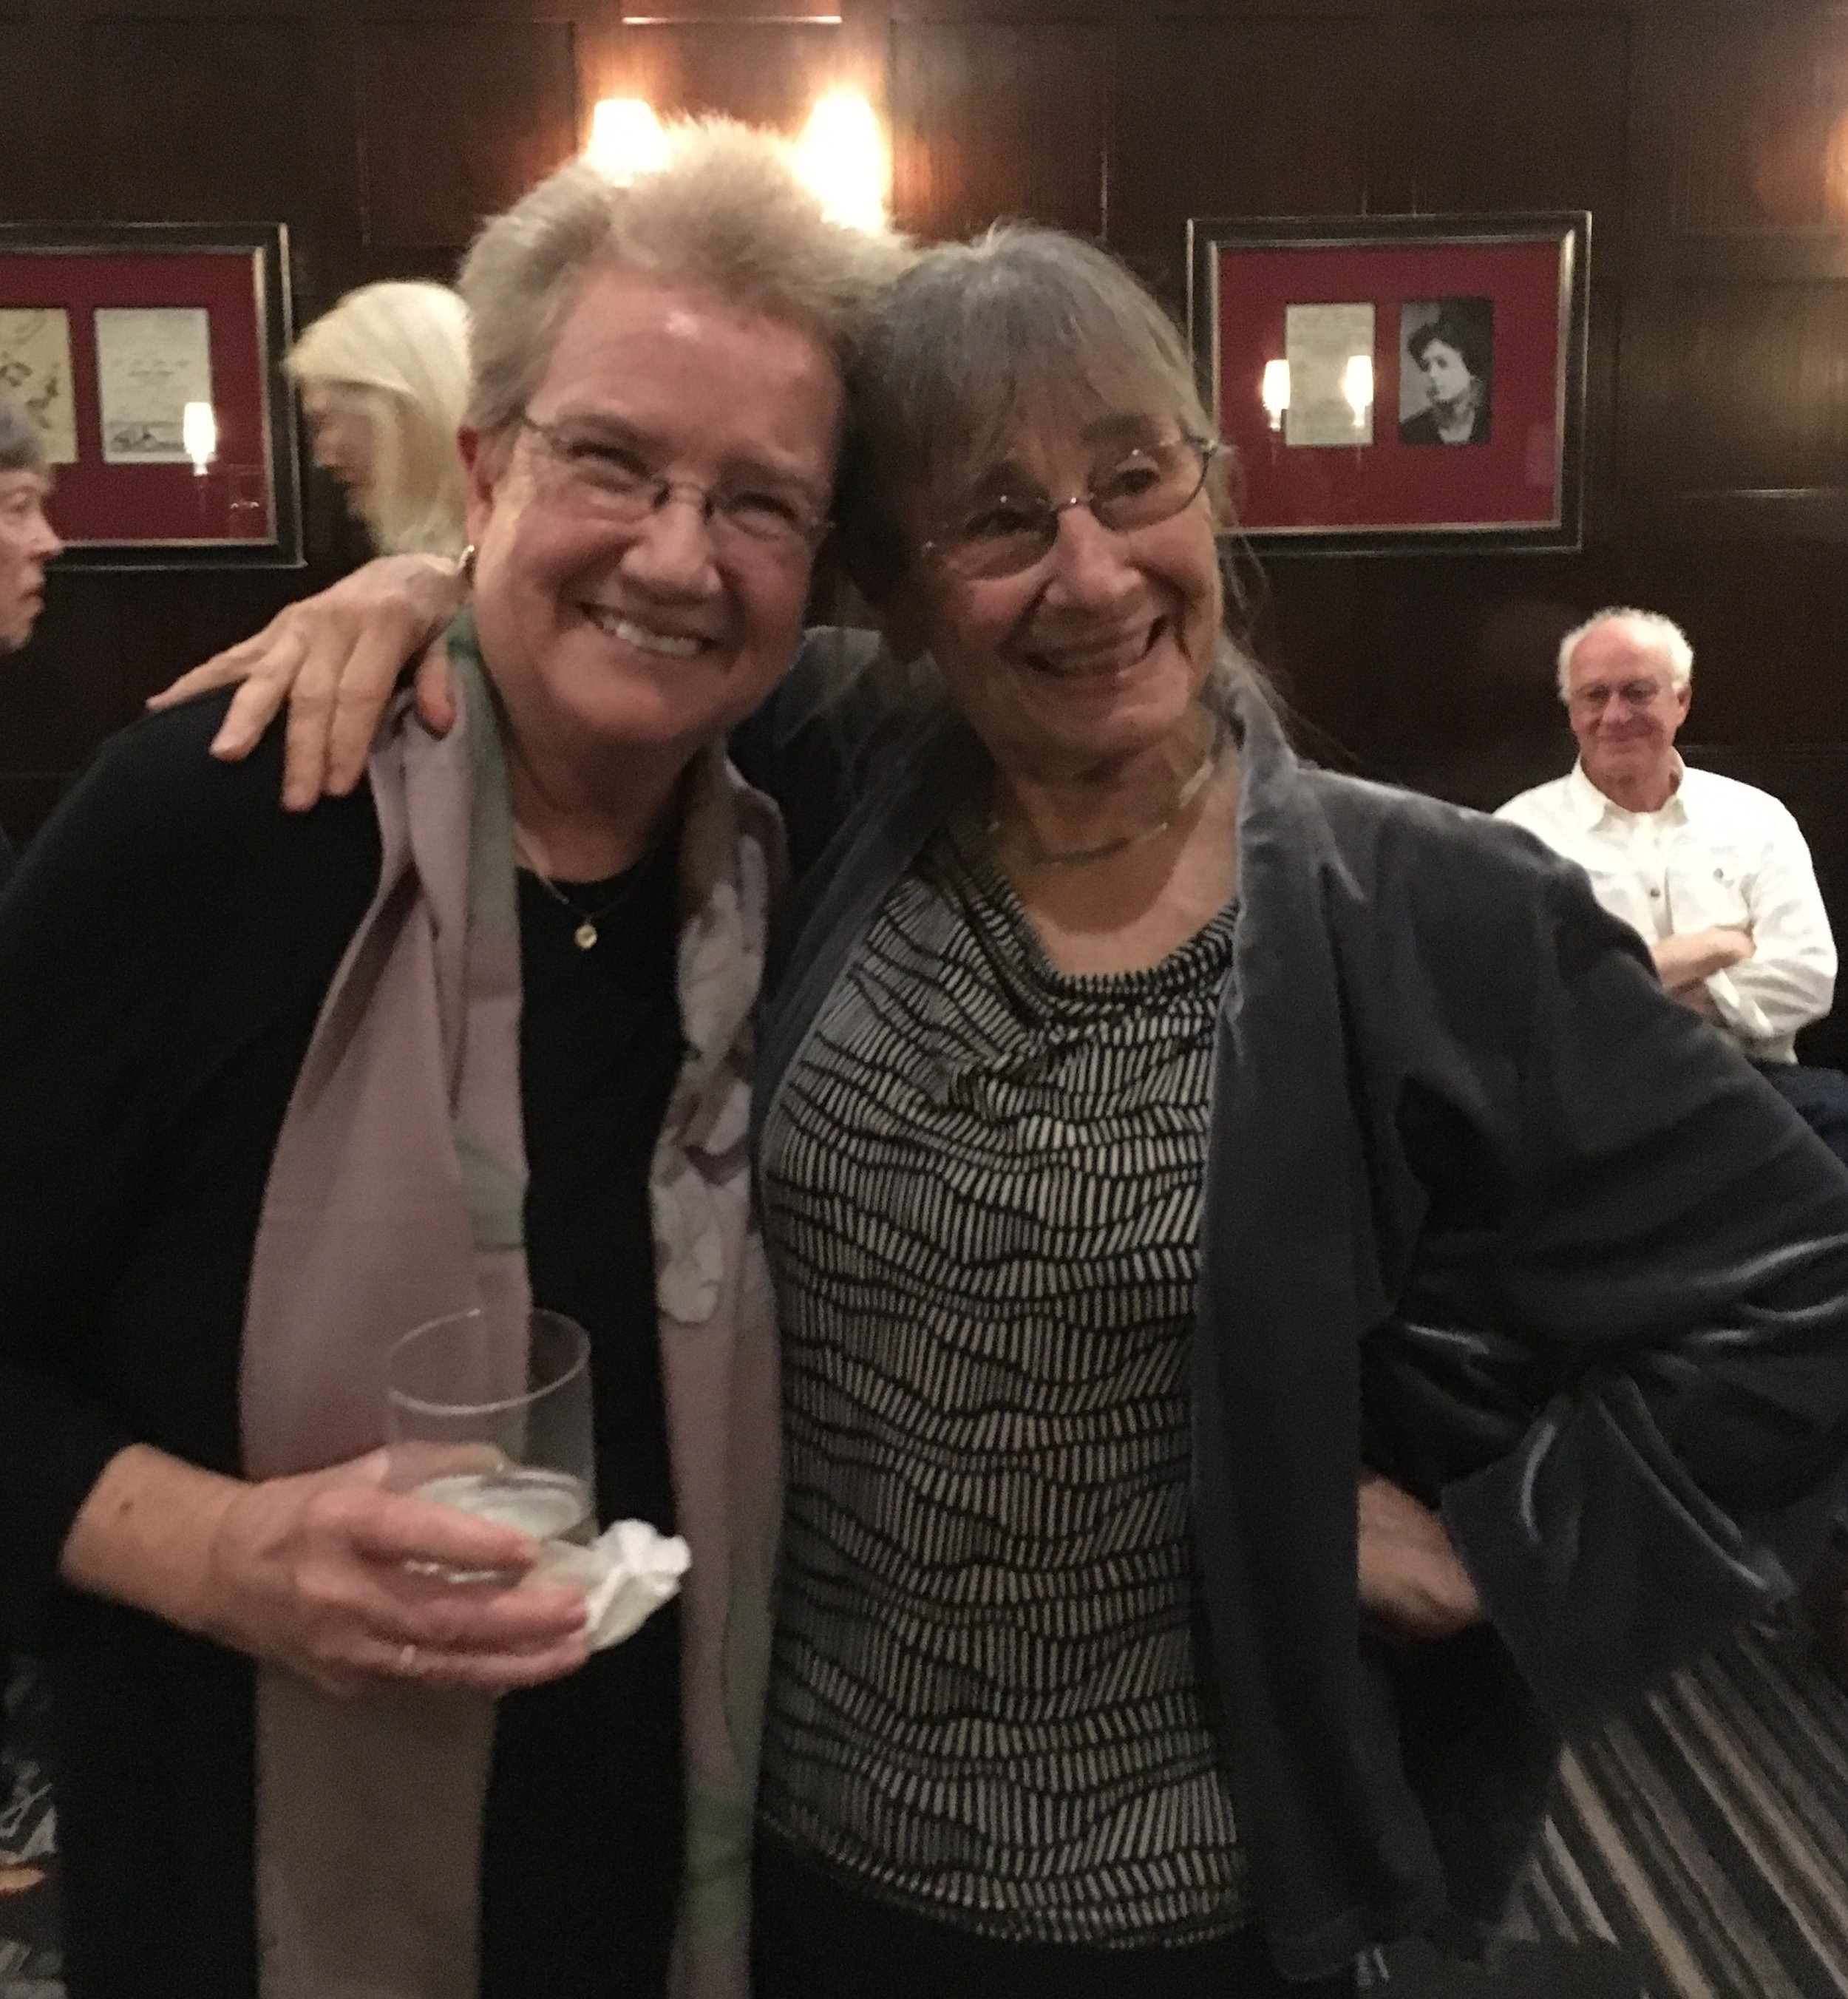 Alicia Ostriker and Martha Nell Smith—a former student of Alicia's and the co-editor of Everywoman Her Own Theology: On the Poetry of Alicia Ostriker—celebrating at the Algoniquin.